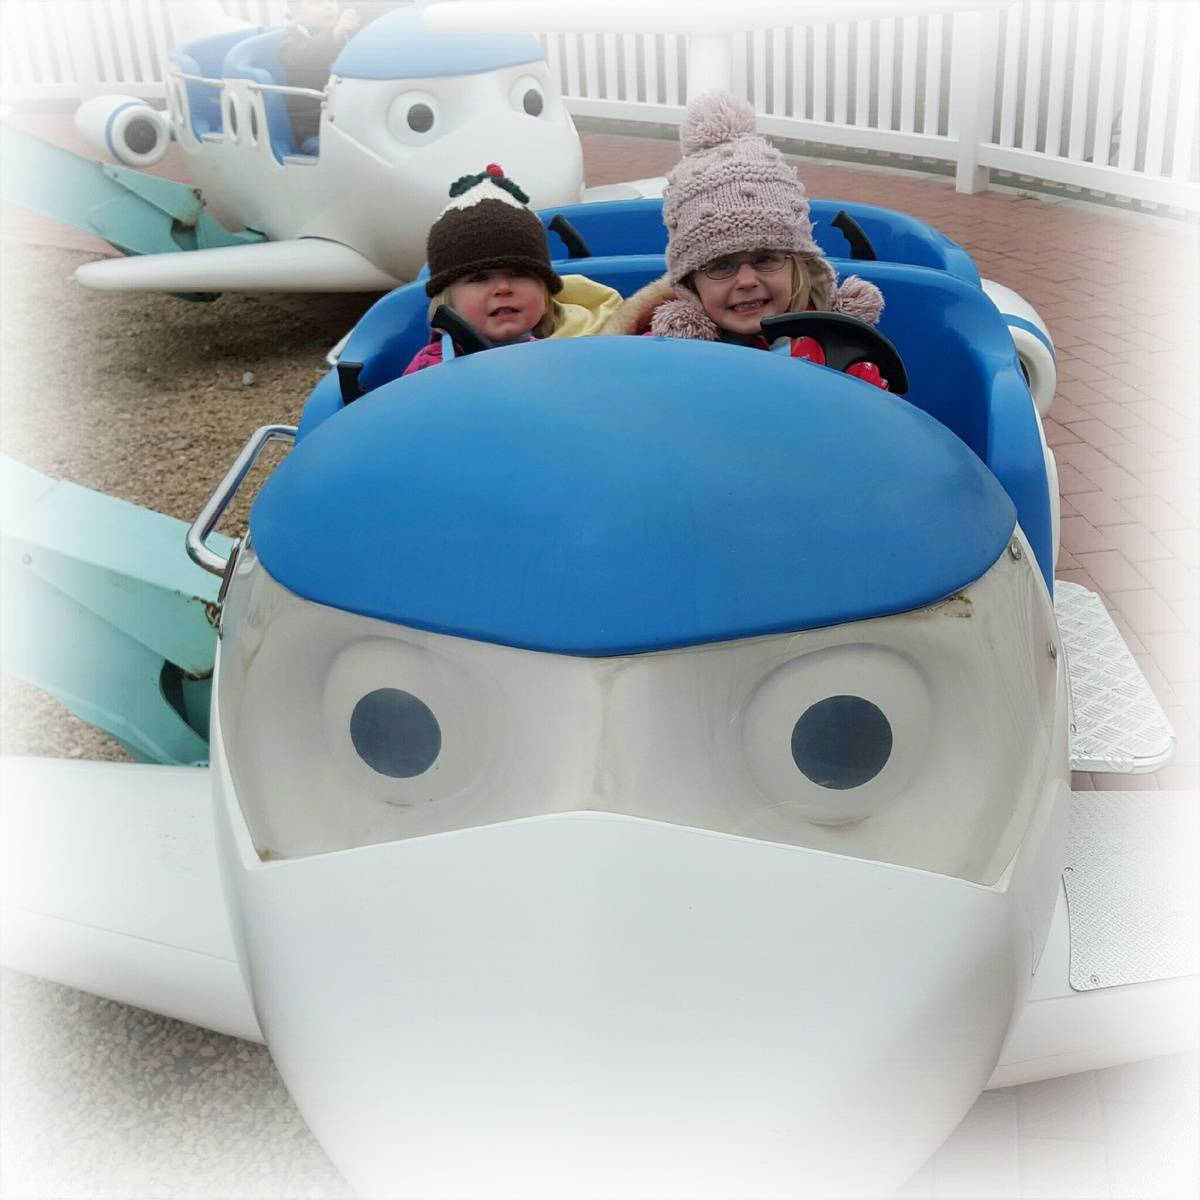 58 family friendly days out in the West Midlands. This is a list of days out in the West Midlands that are suitable for families with children. Includes links to their websites for further information.